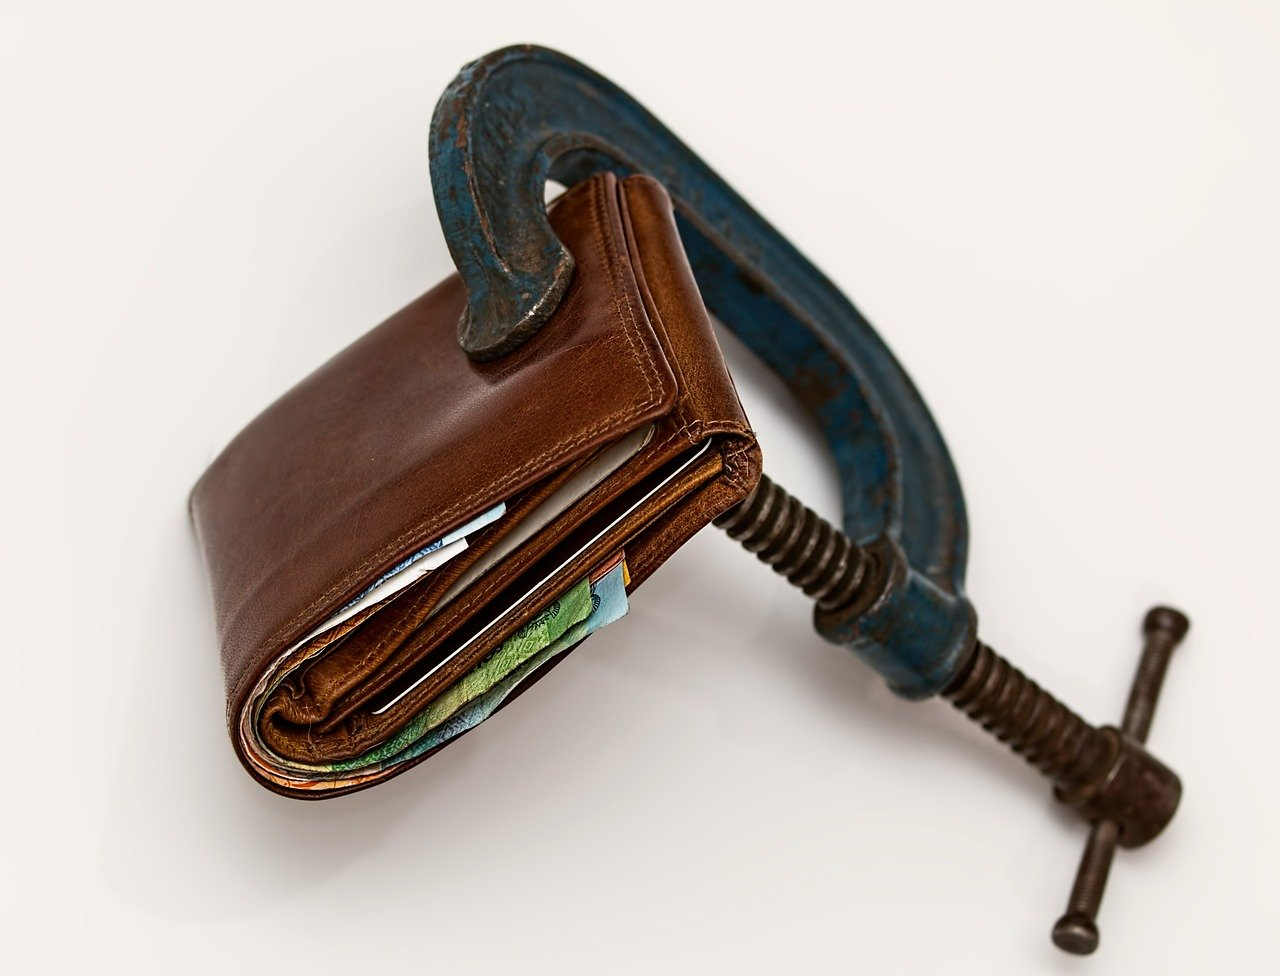 Debt Recovery Solutions collection accounts